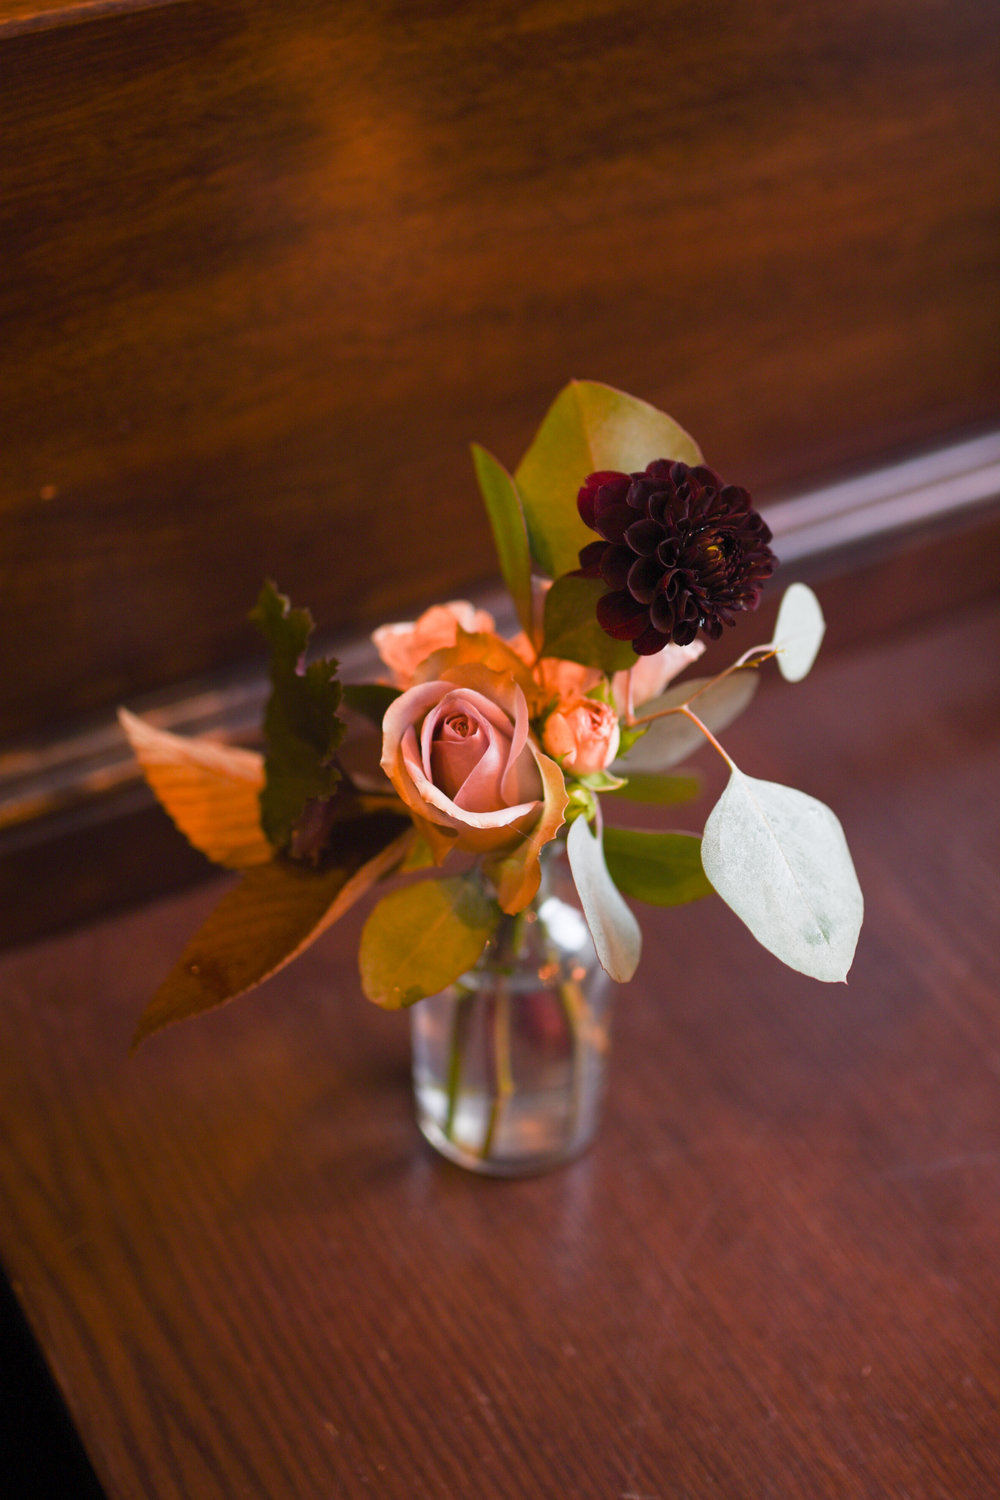 A variety of greens is one of the most attractive parts of the wedding flowers